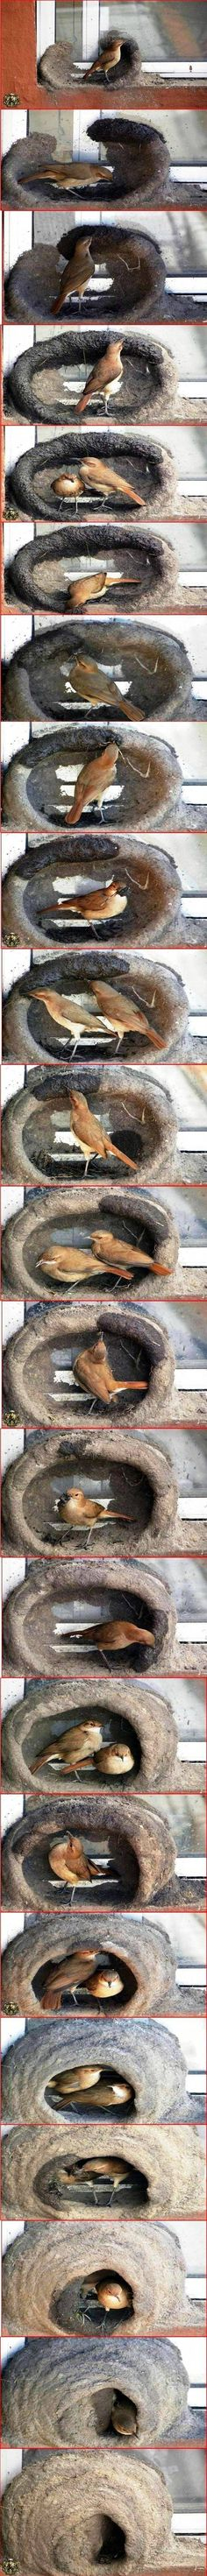 Incredible photos showing the progress of birds building their nest! Wonder what kind they are...